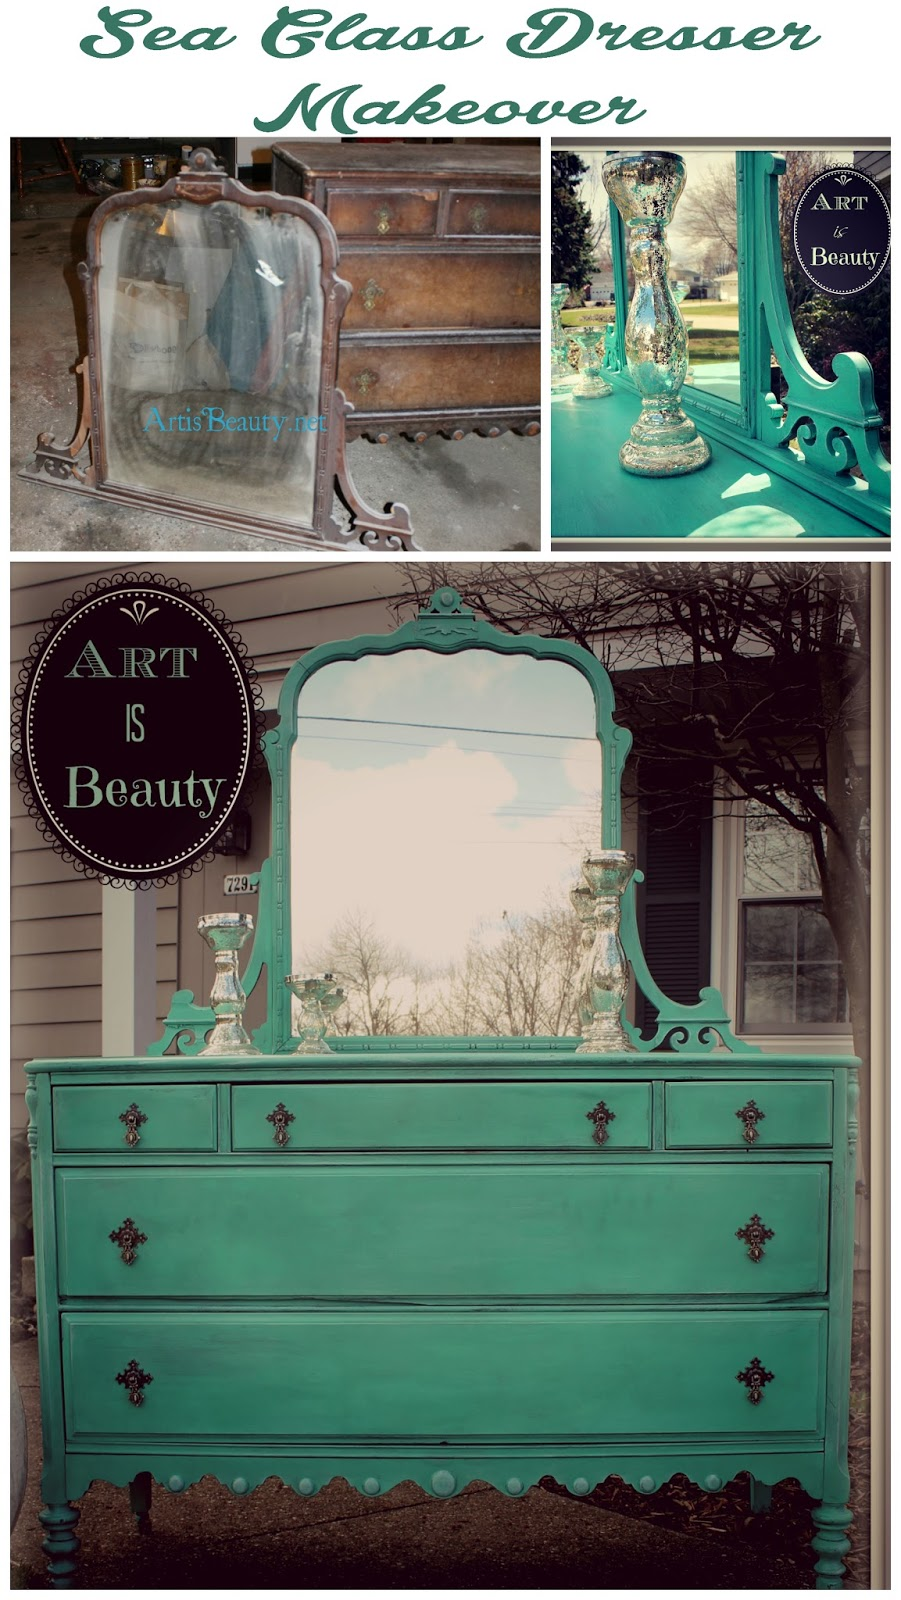 Art Is Beauty To Beauty From Beast Custom Sea Glass Dresser Makeover